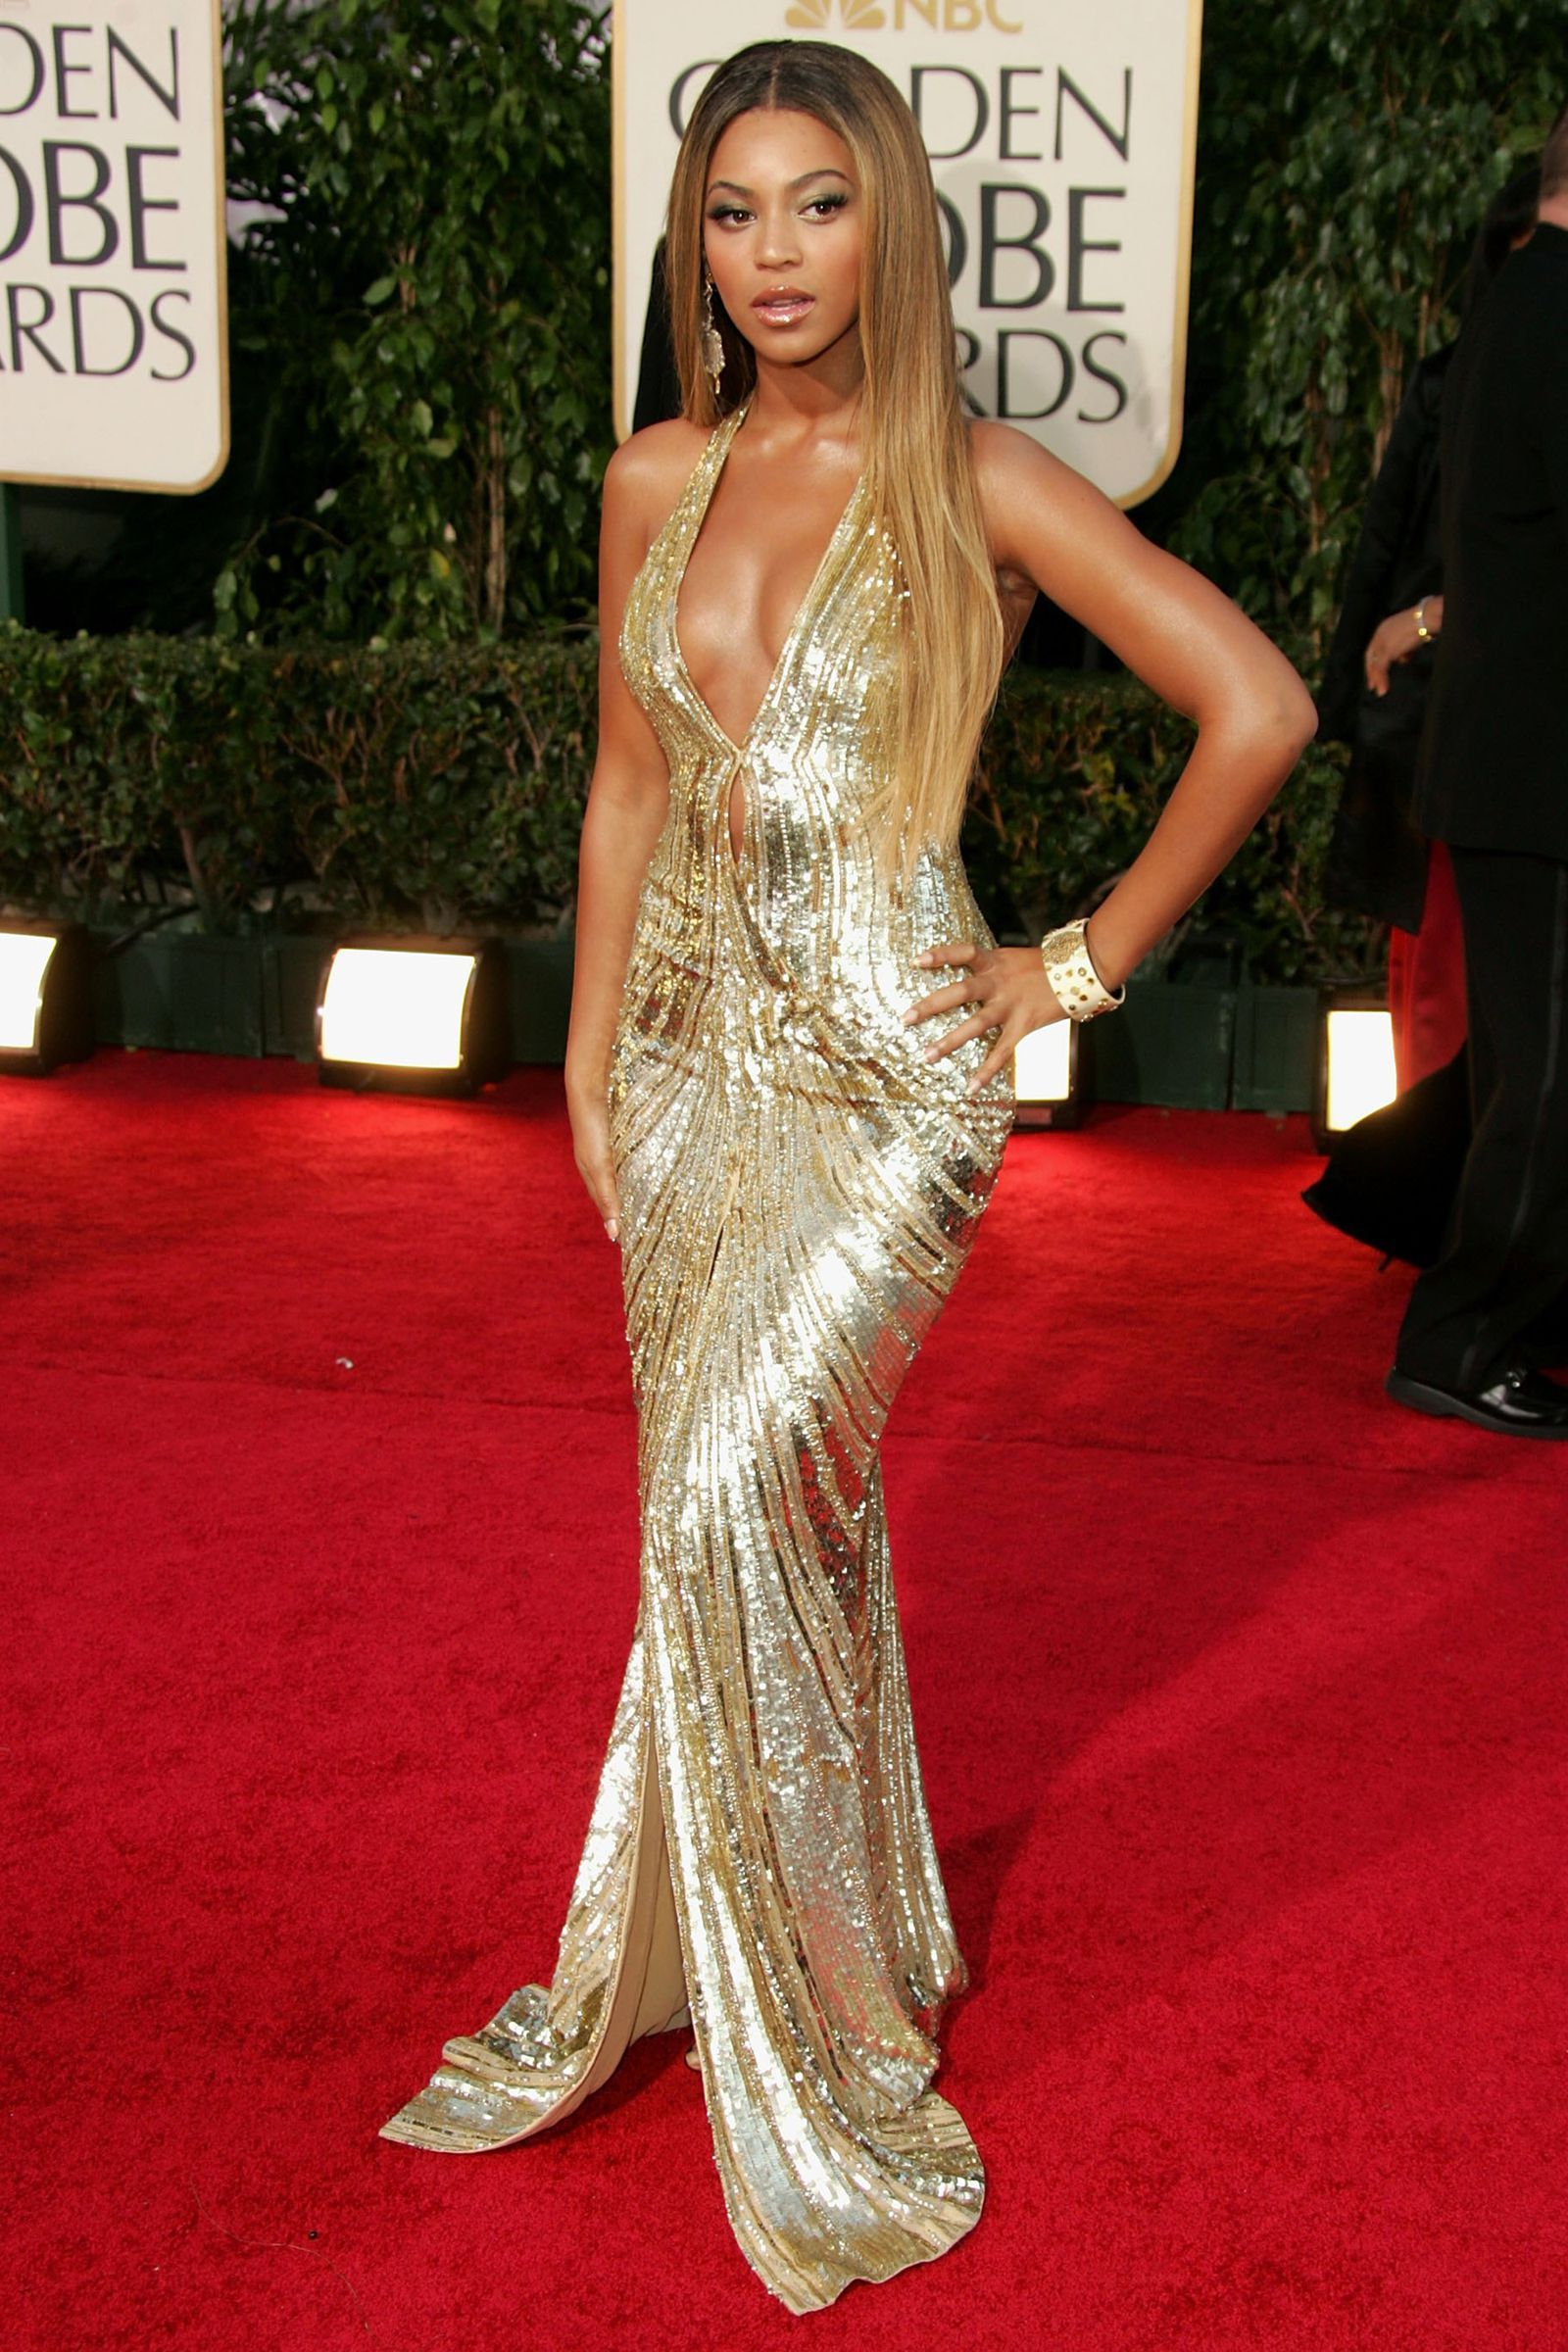 Image result for beyonce in a gold dress